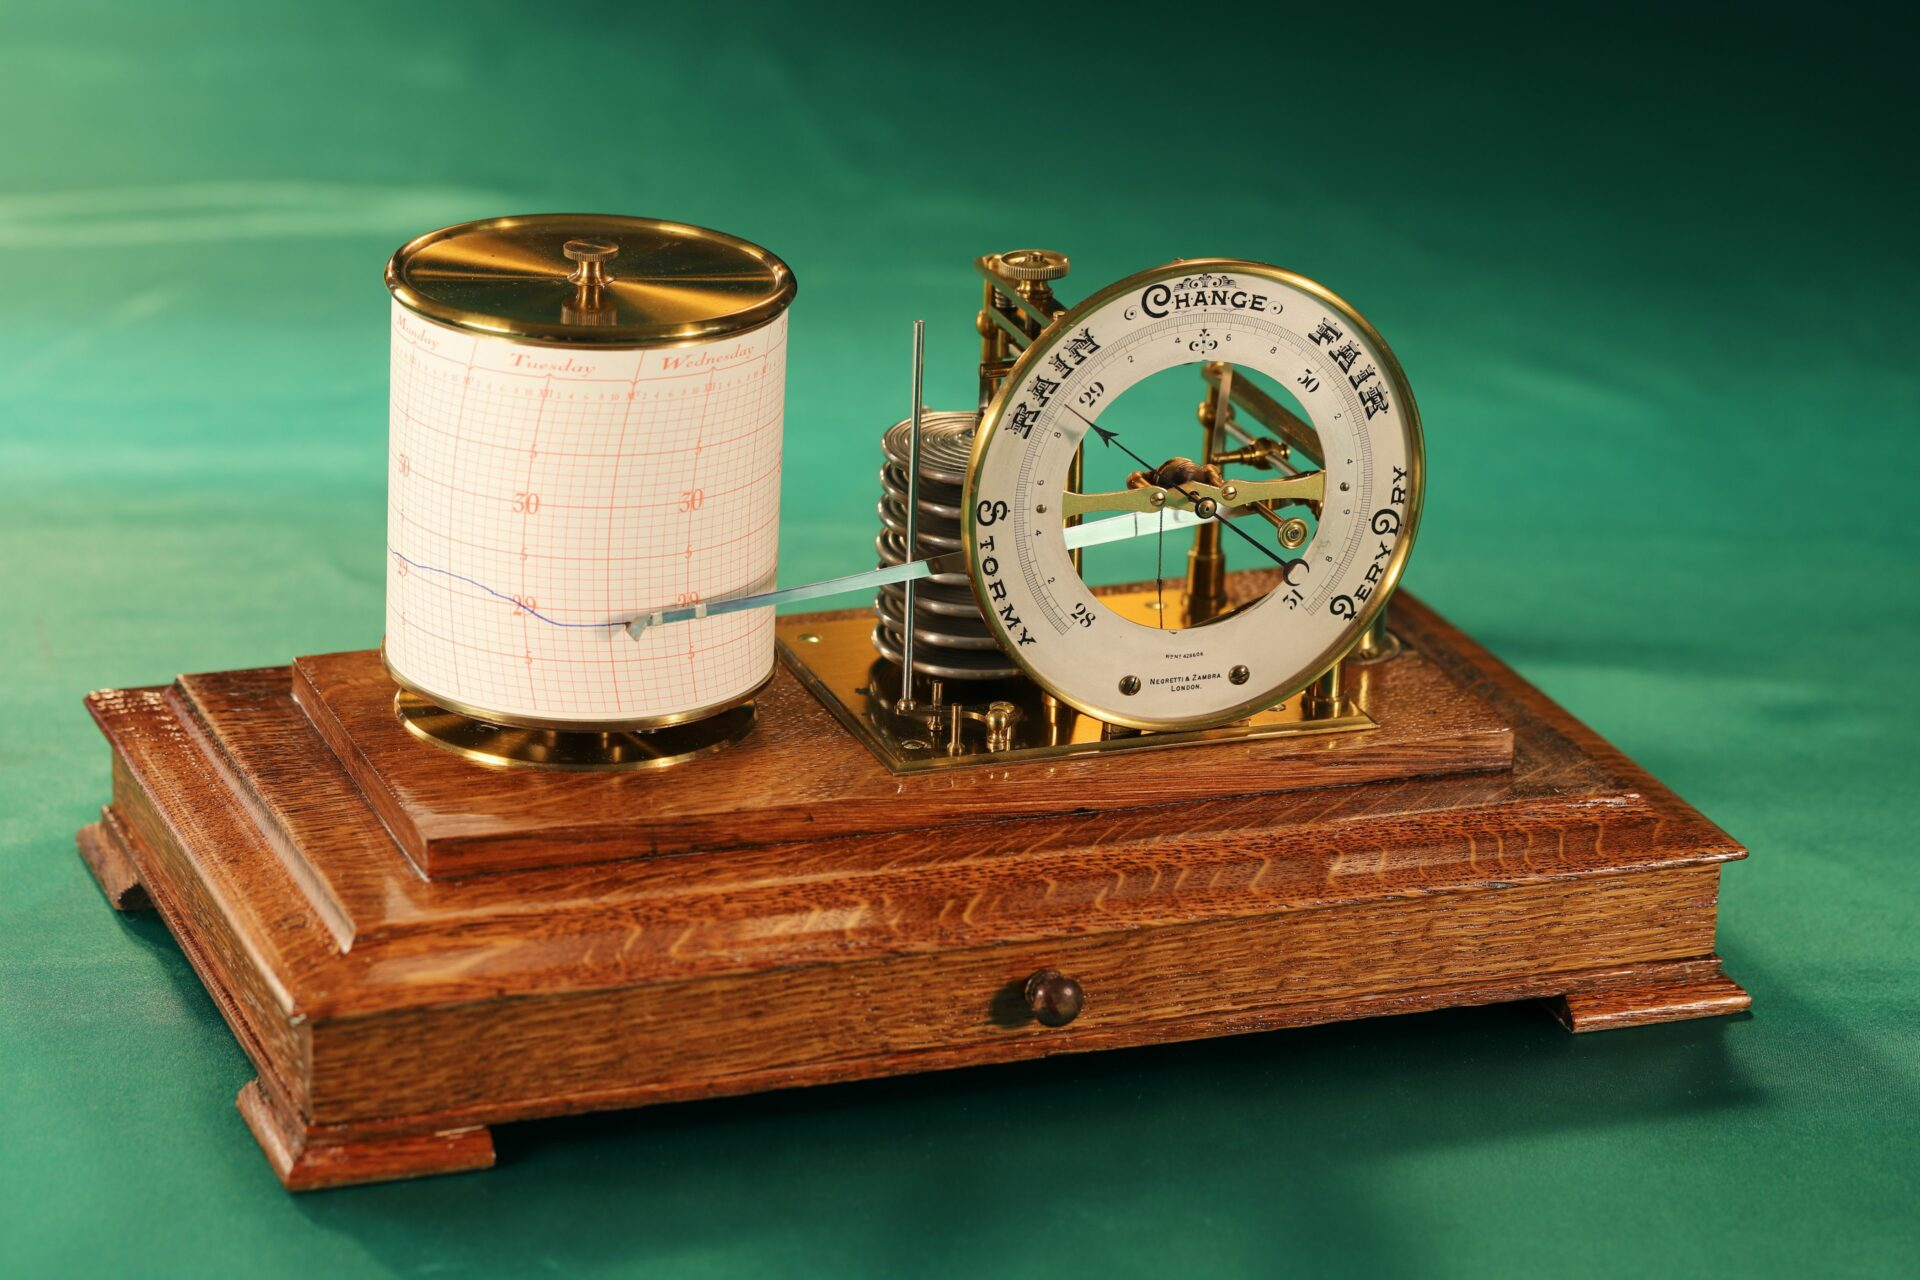 Image of Negretti & Zambra Barograph with Dial No 455 c1918 with case lid removed taken from front left